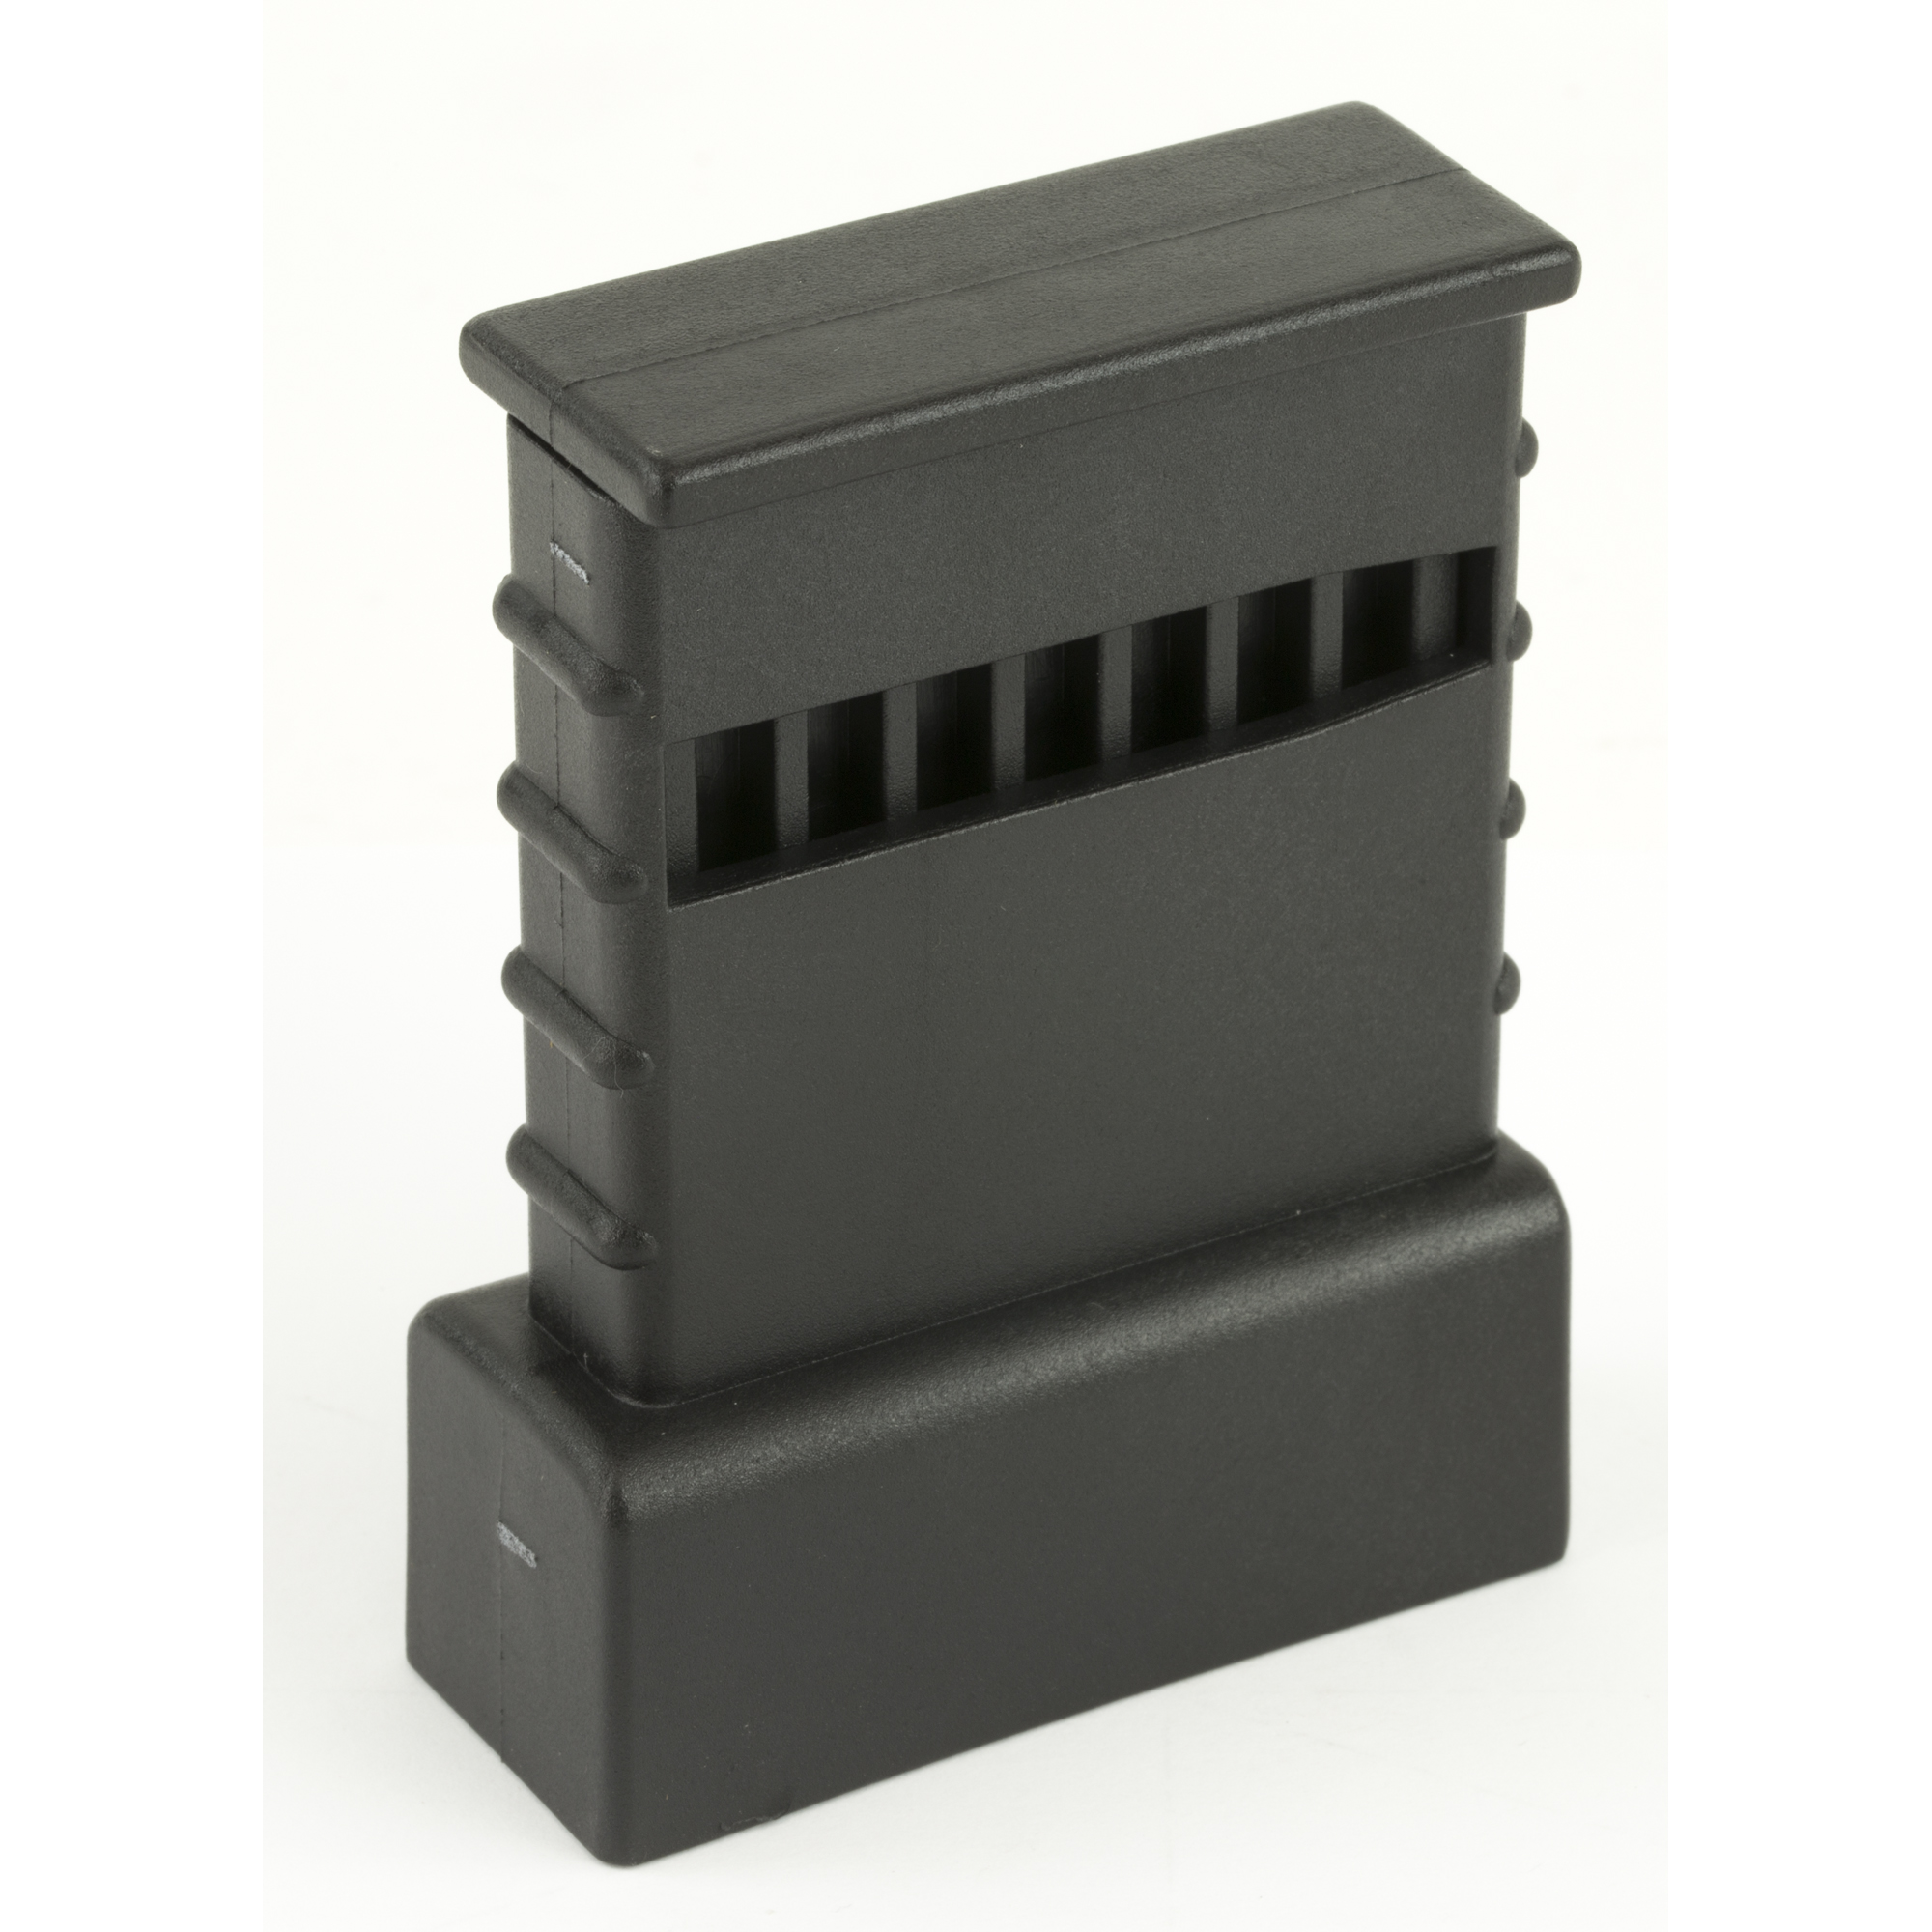 This magazine loader was originally designed to load the (100) Rd .223 / 5.56 BETA magazine. The loader is slipped over any AR-15(R) / M16 .223 / 5.56 type magazine. Five cartridges are dropped in and loaded by depressing the plunger. The process is repeated until the magazine is loaded. Constructed of injection molded black polymer.